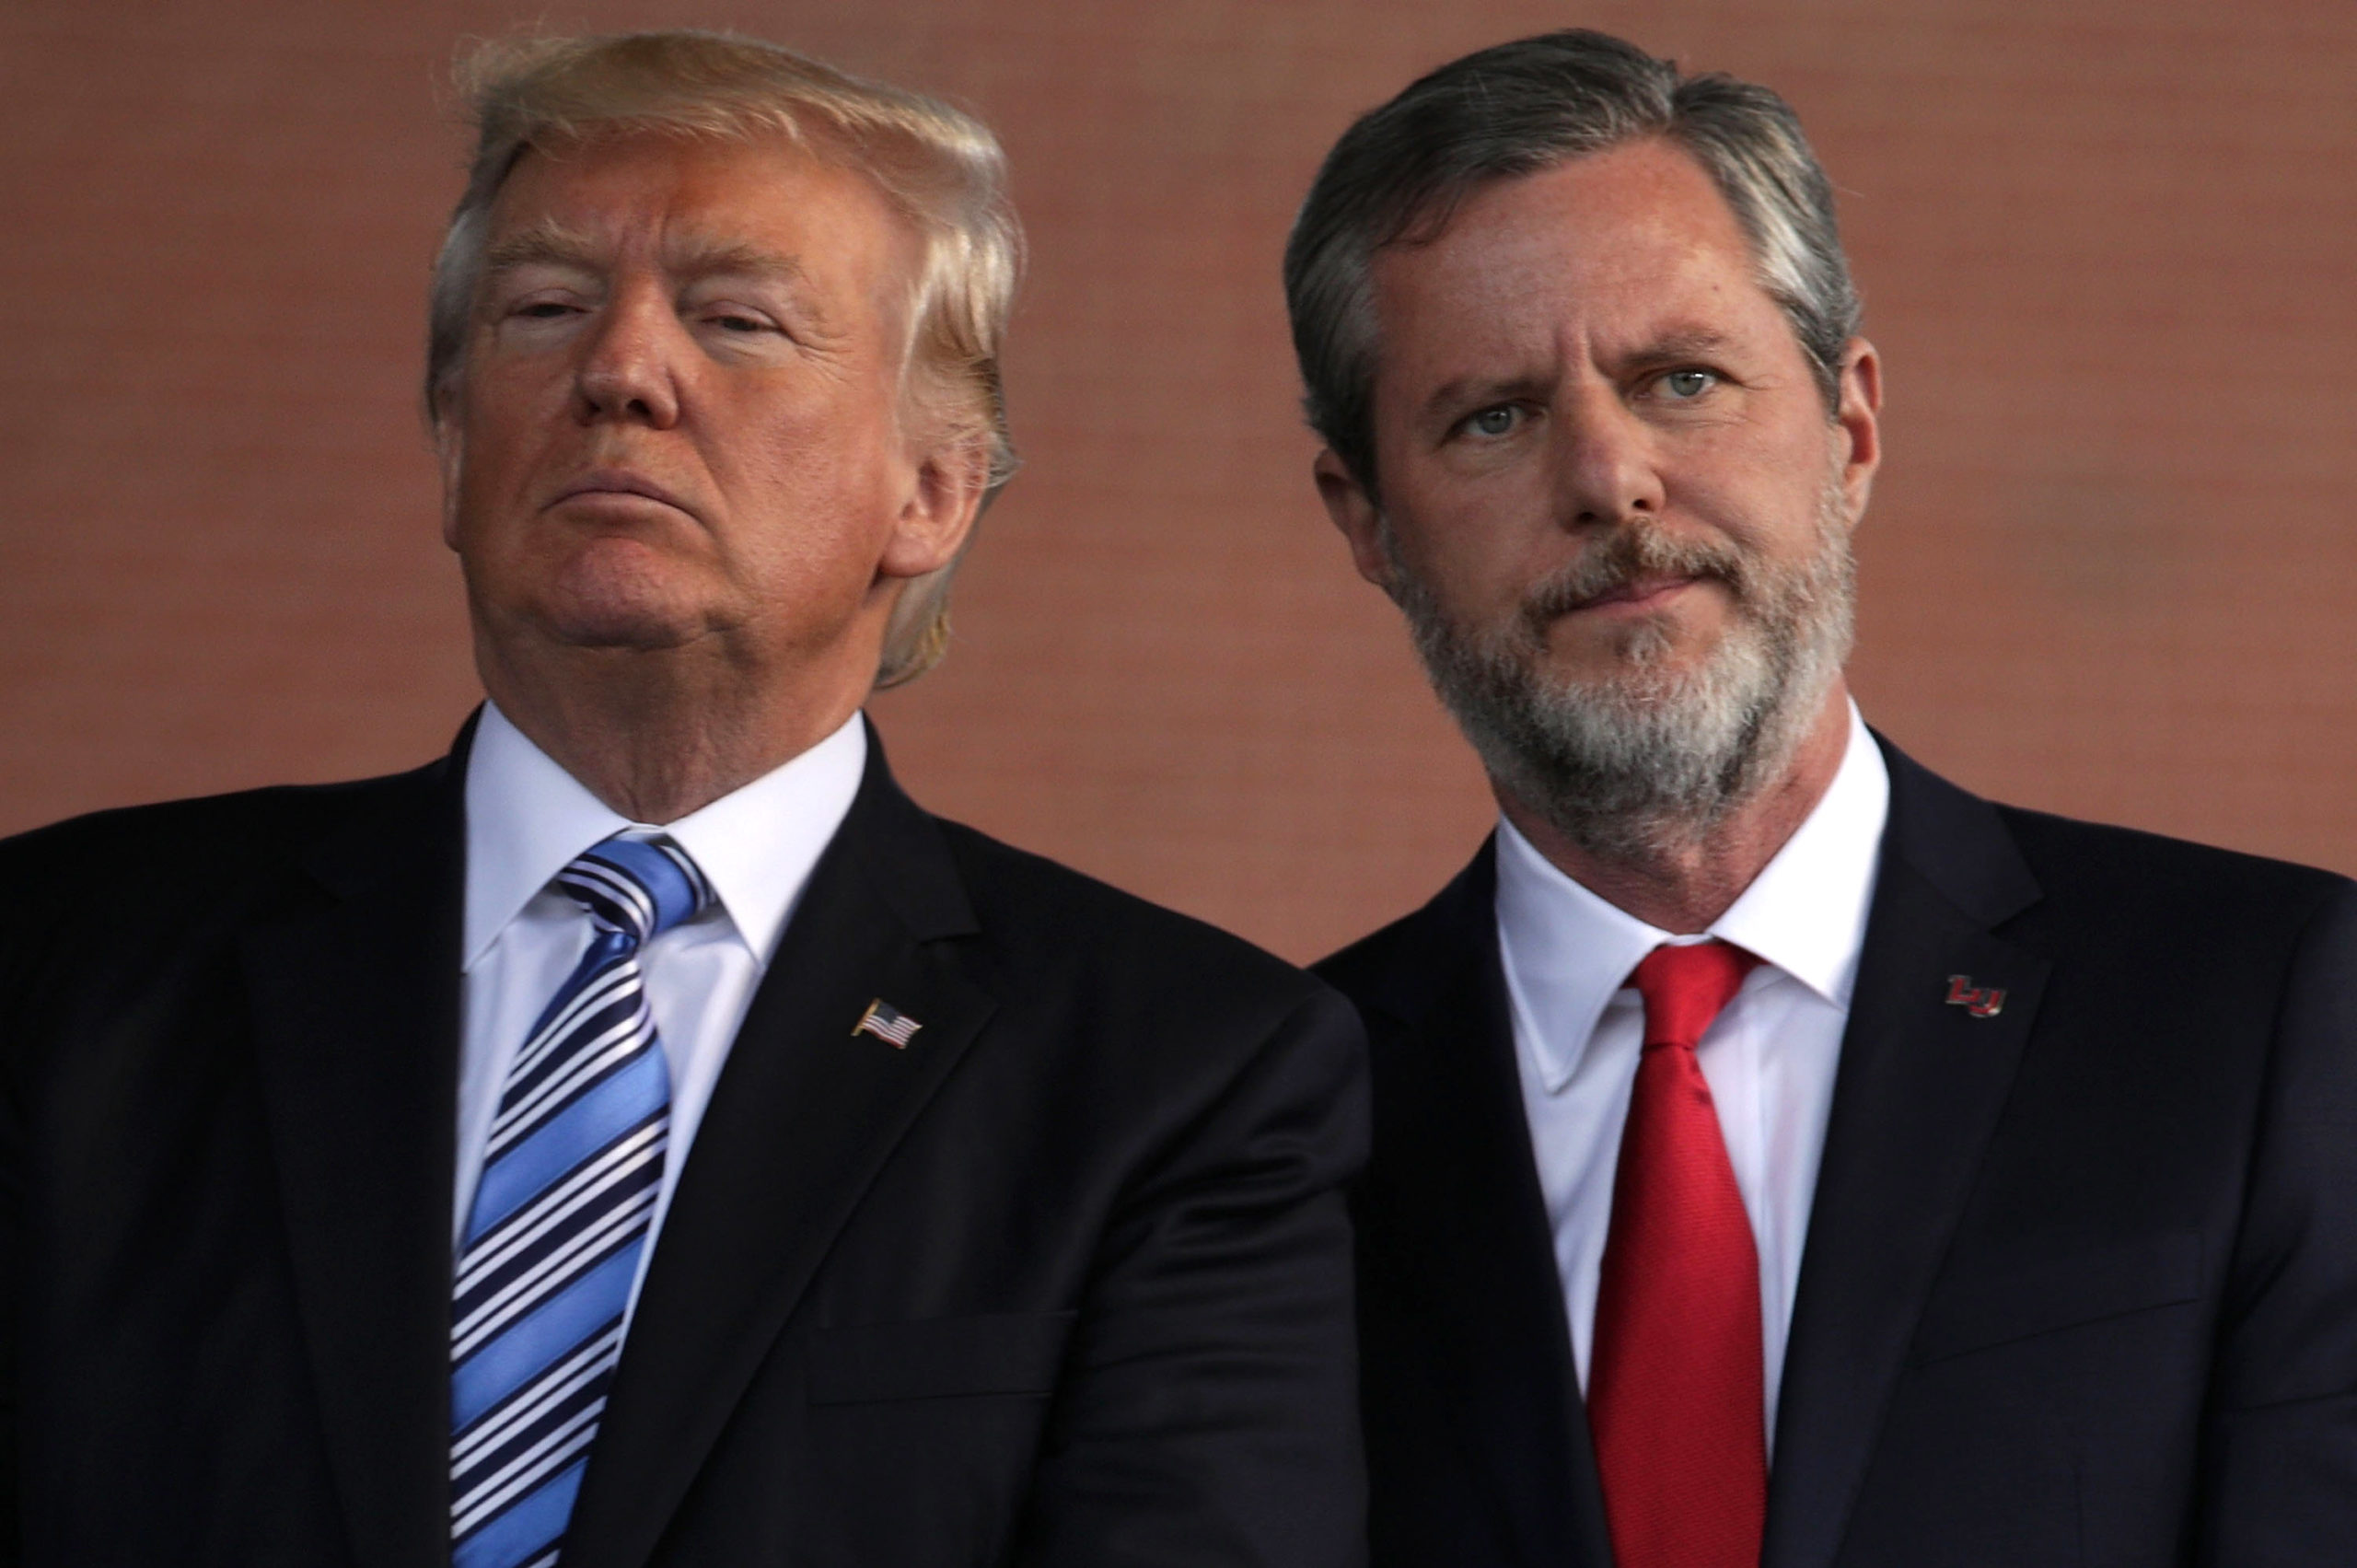 US President Donald Trump and Jerry Falwell